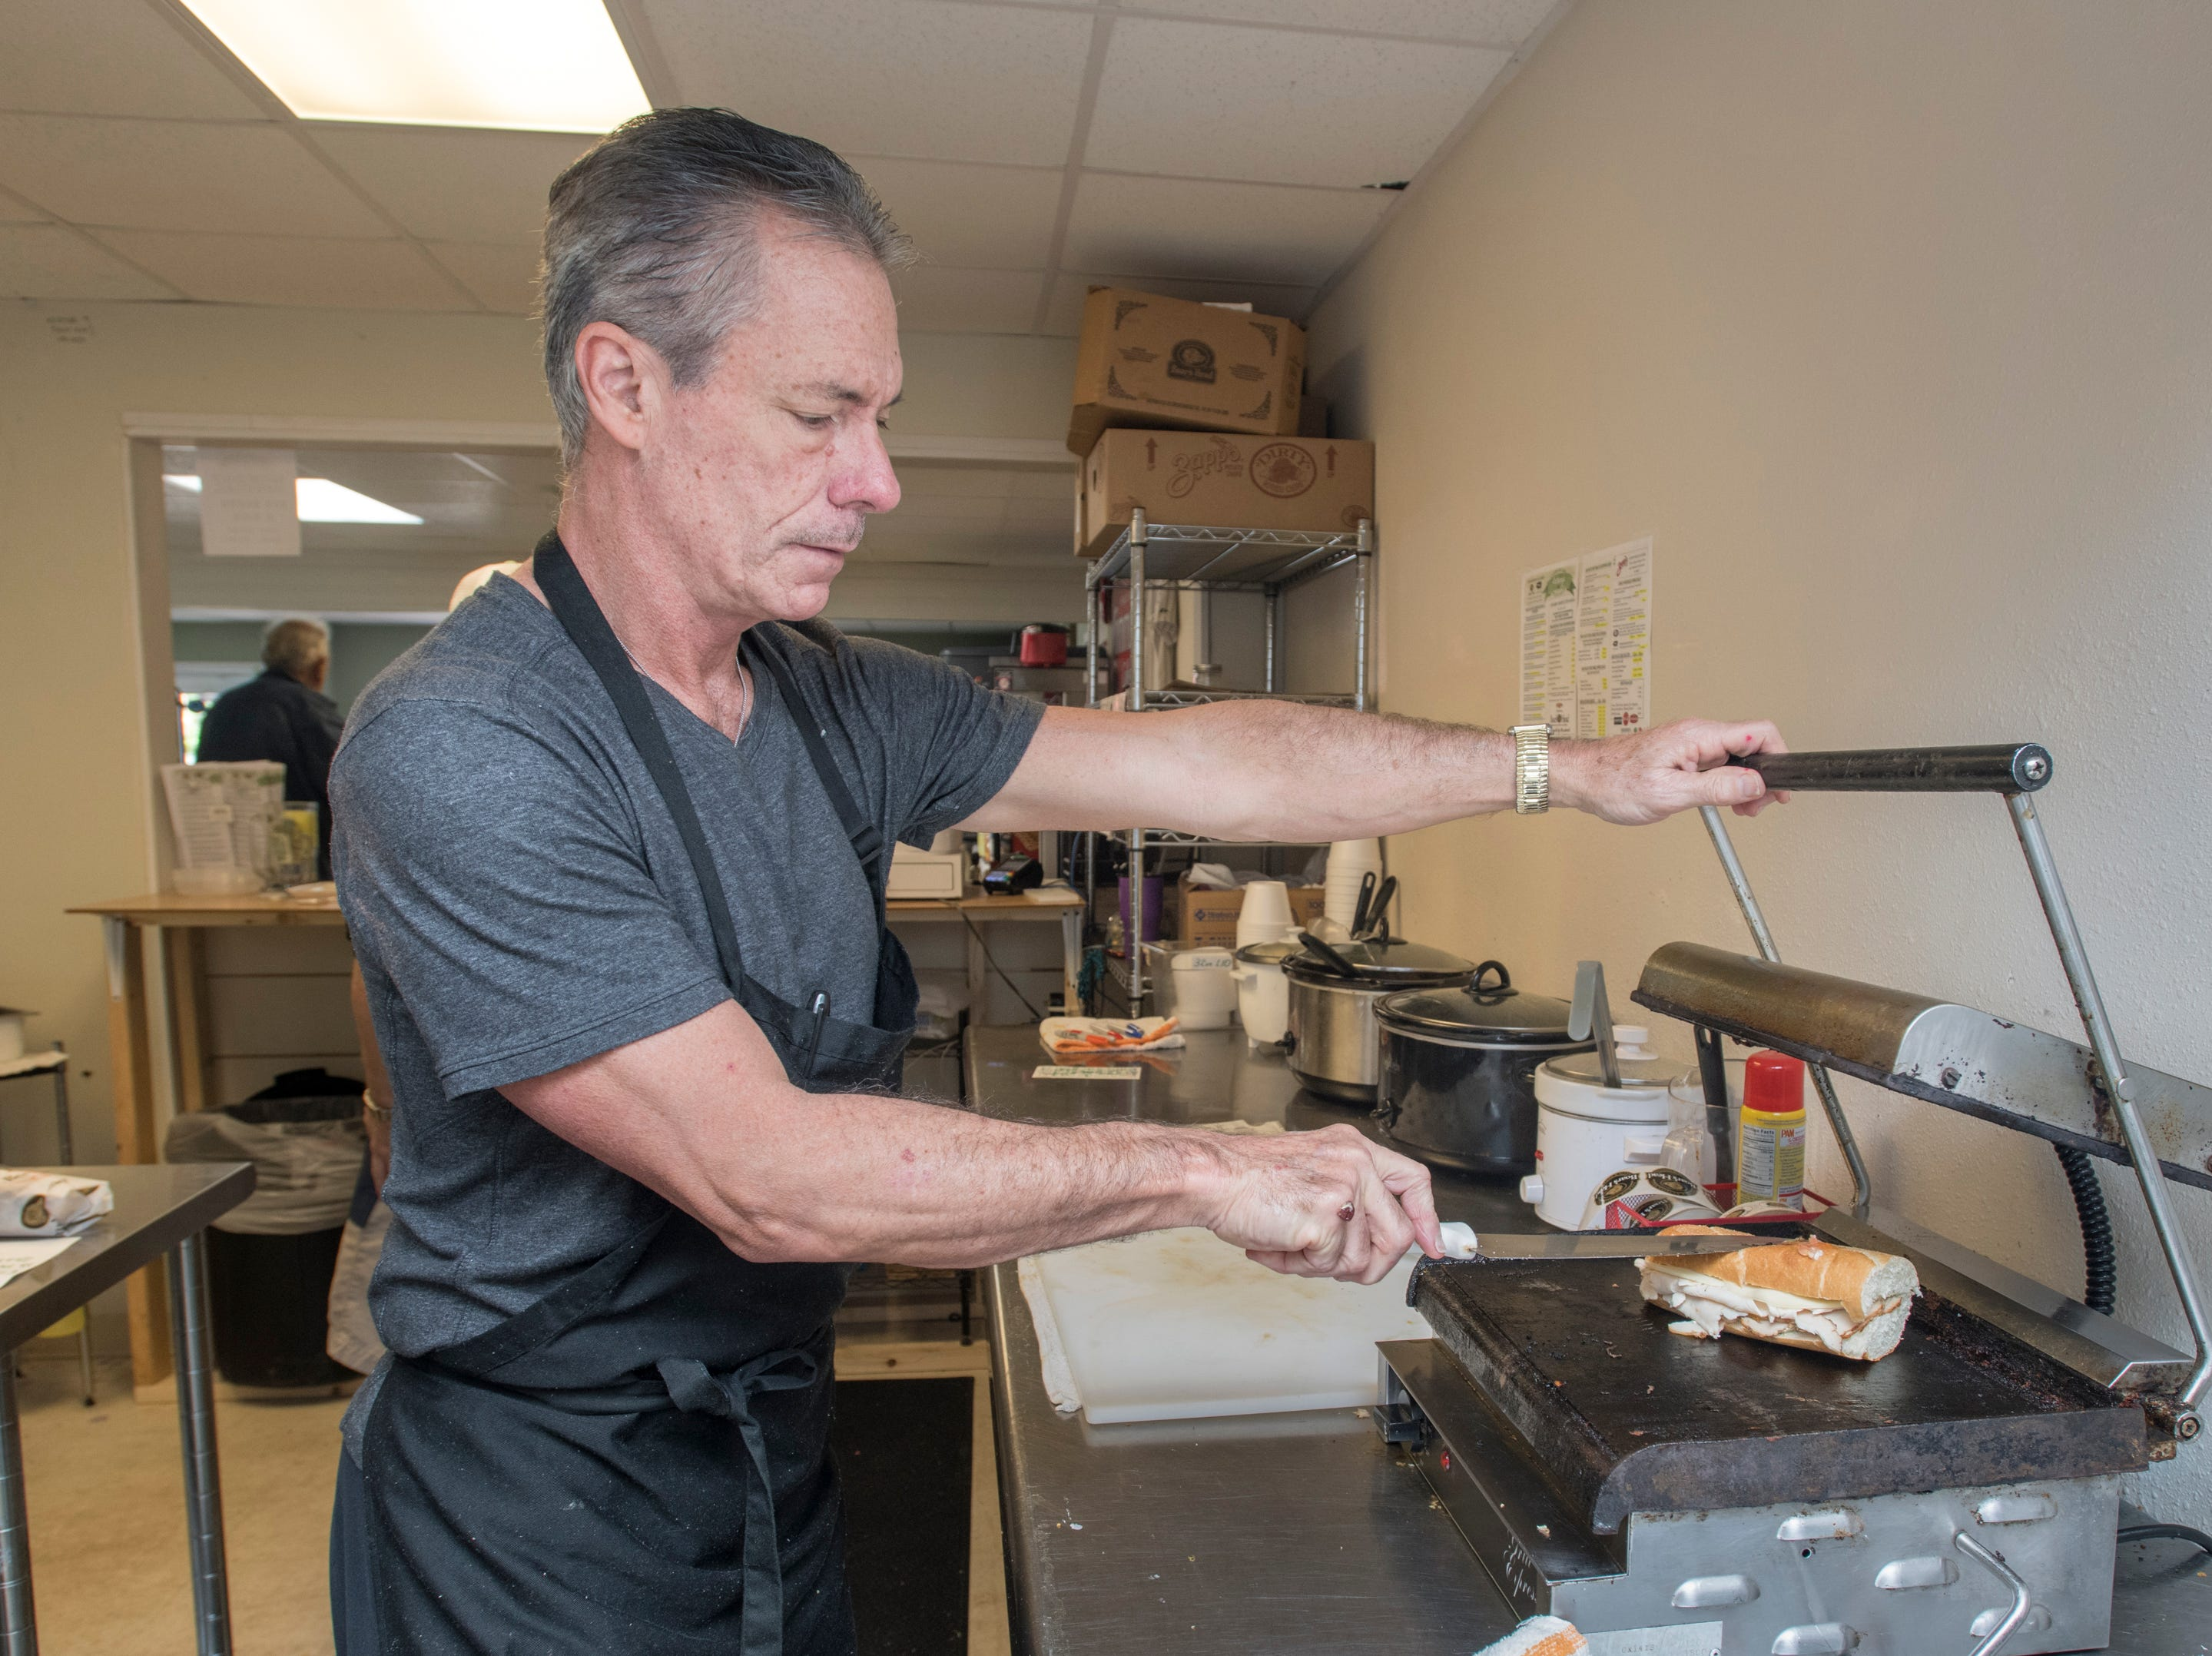 Owner Mike Lutts grills a sub at Anthony's Deli on Lilian Highway in Pensacola on Monday, March 25, 2019.